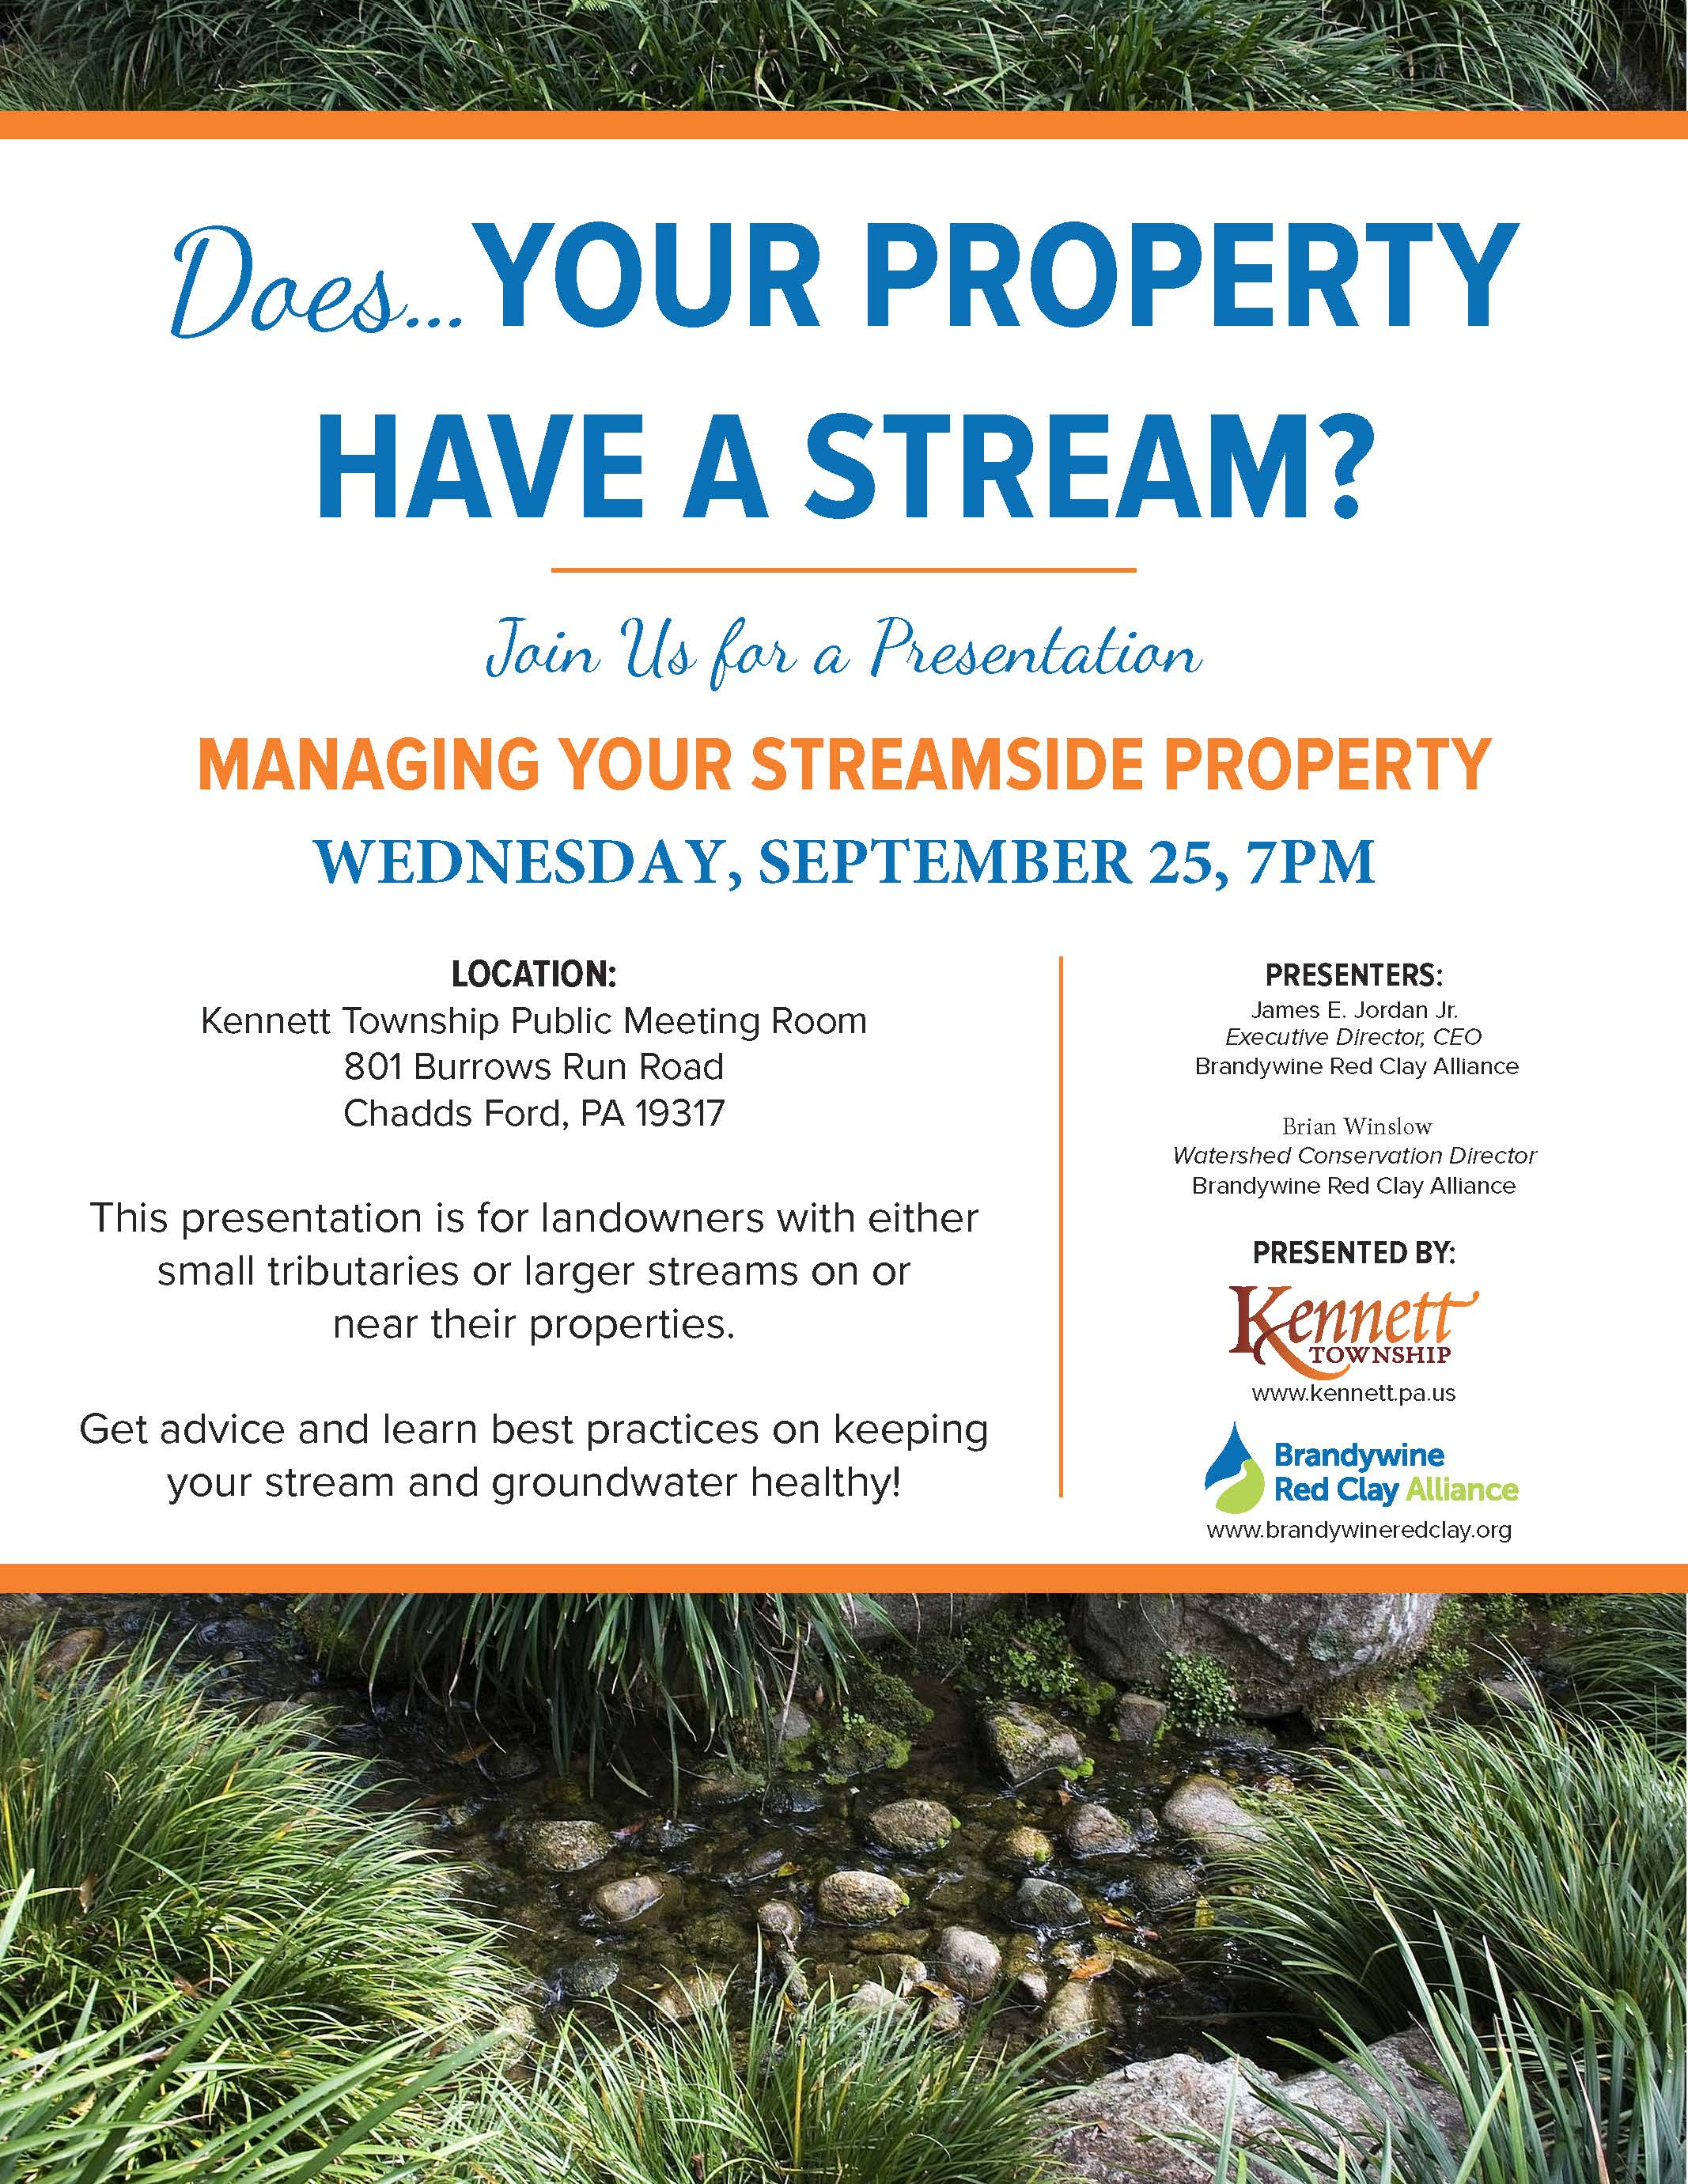 KENNETT TOWNSHIP MANAGING YOUR STREAM